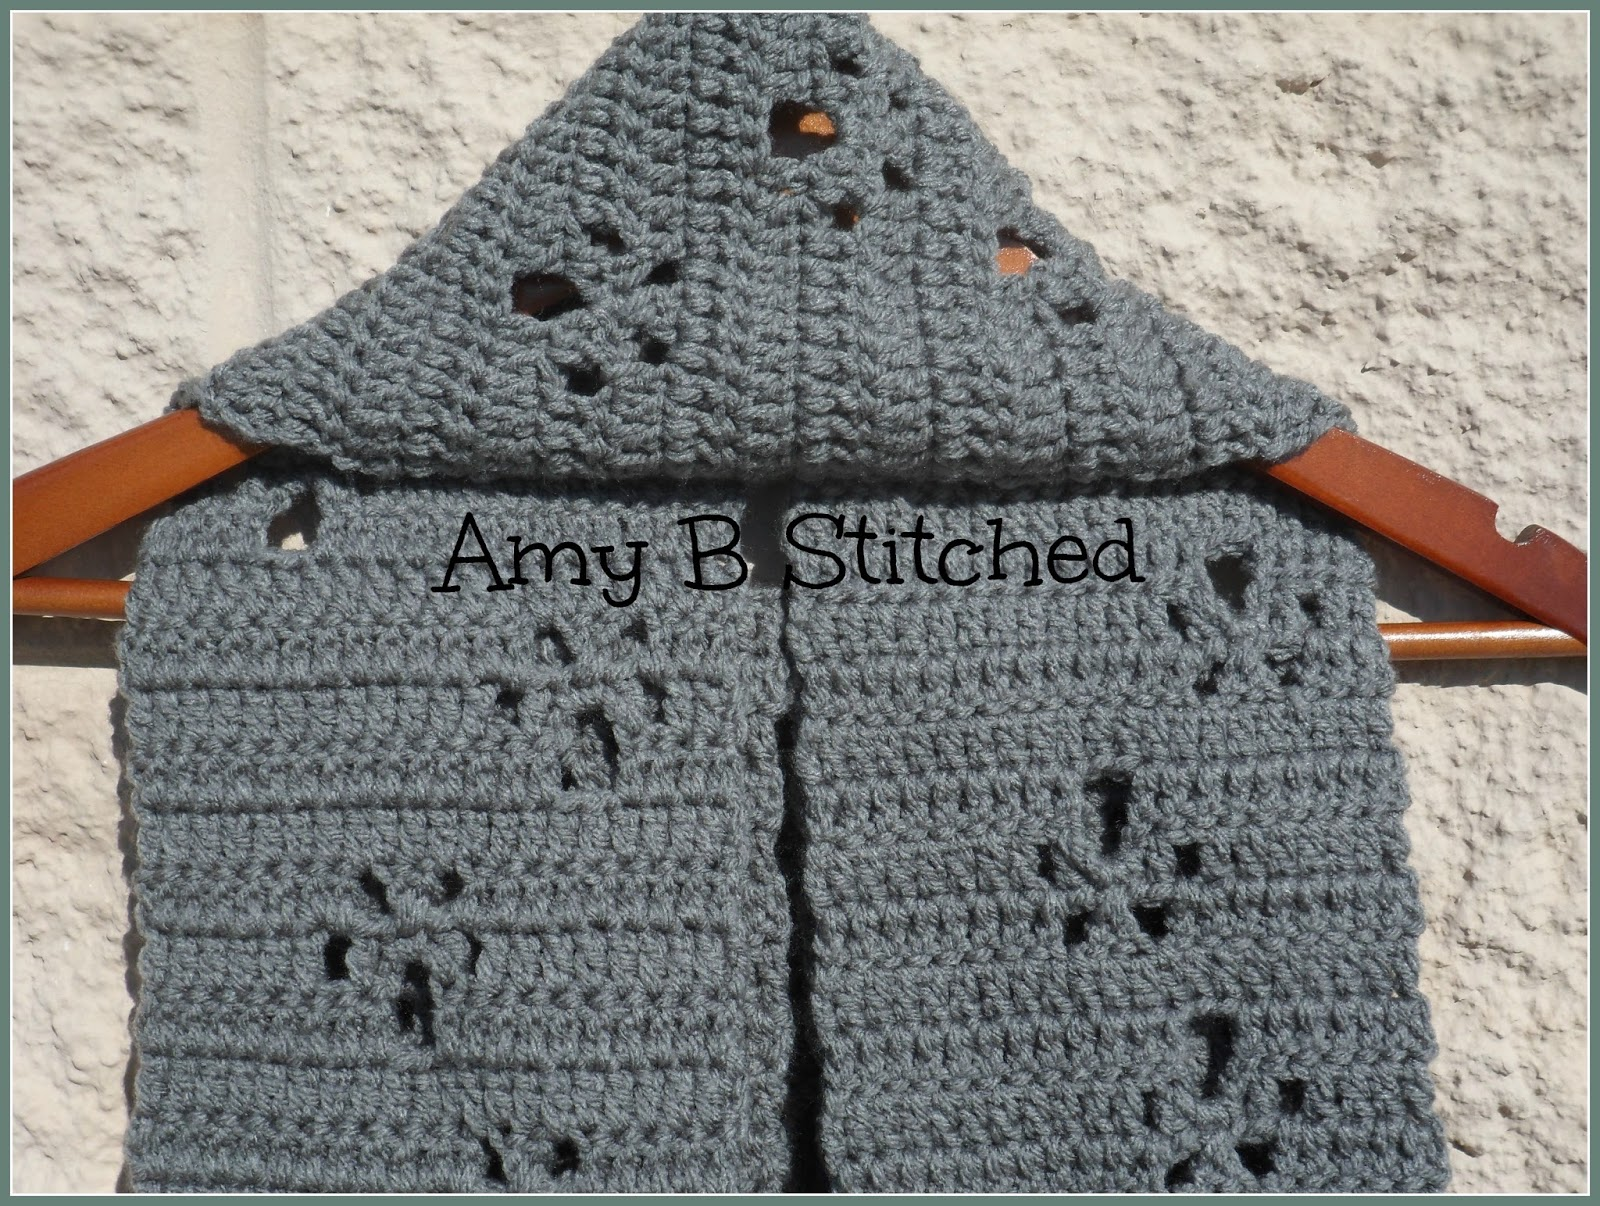 A Stitch At A Time for Amy B Stitched: Meandering Paw Prints FREE ...